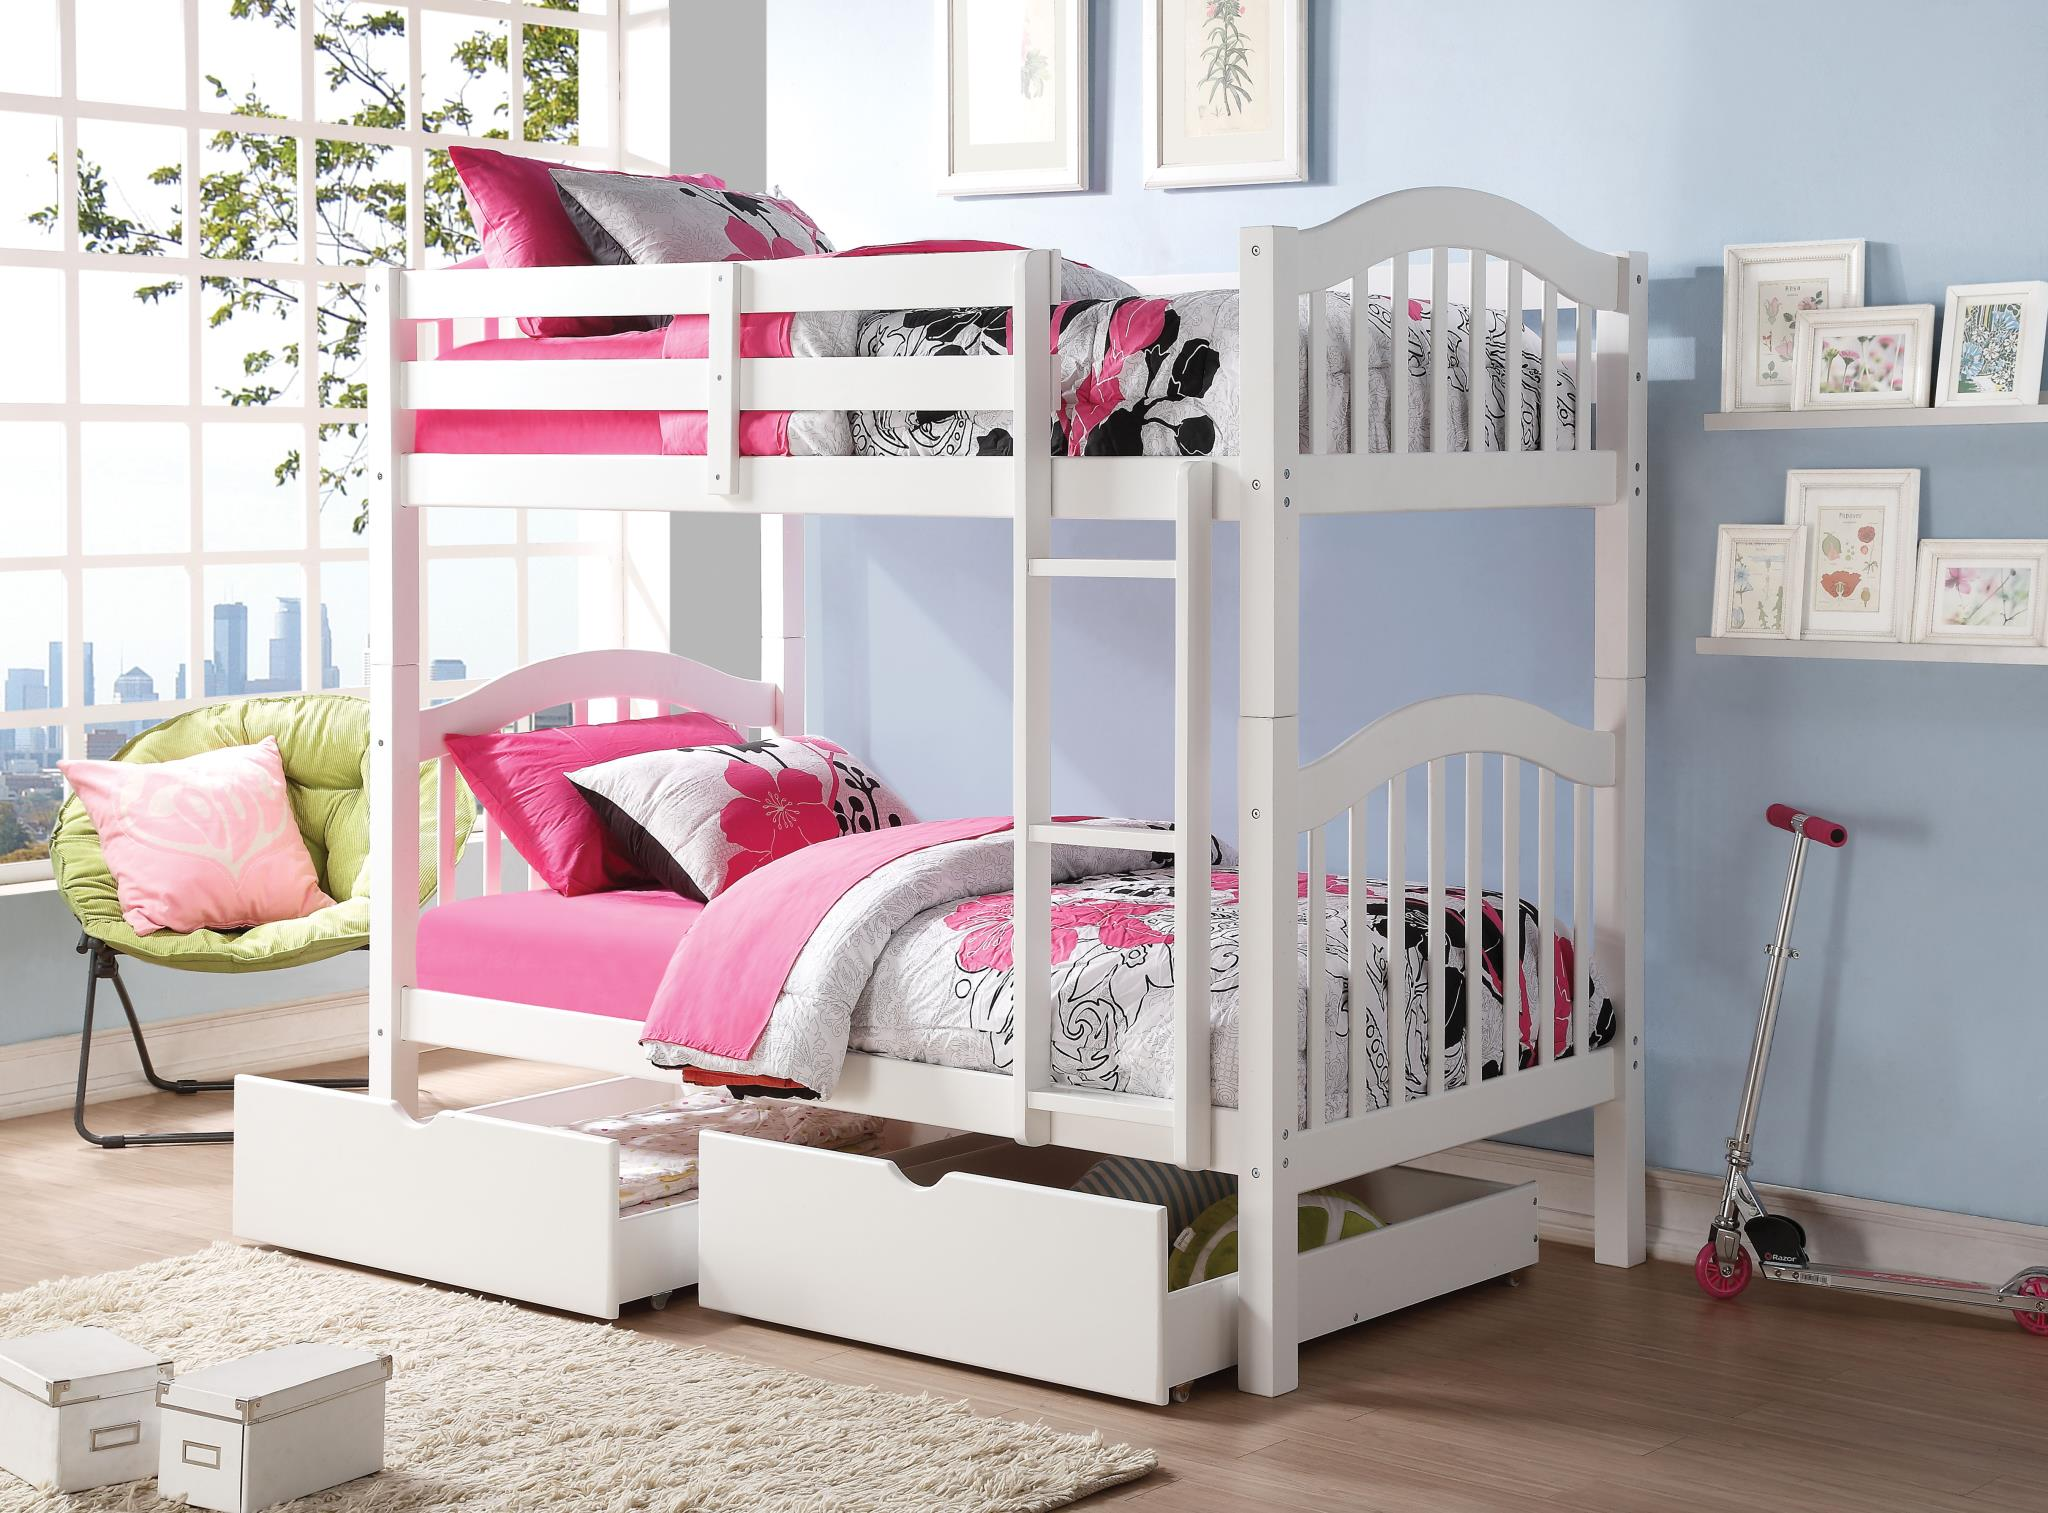 White Twin/Twin Bunk Bed w/ Drawers